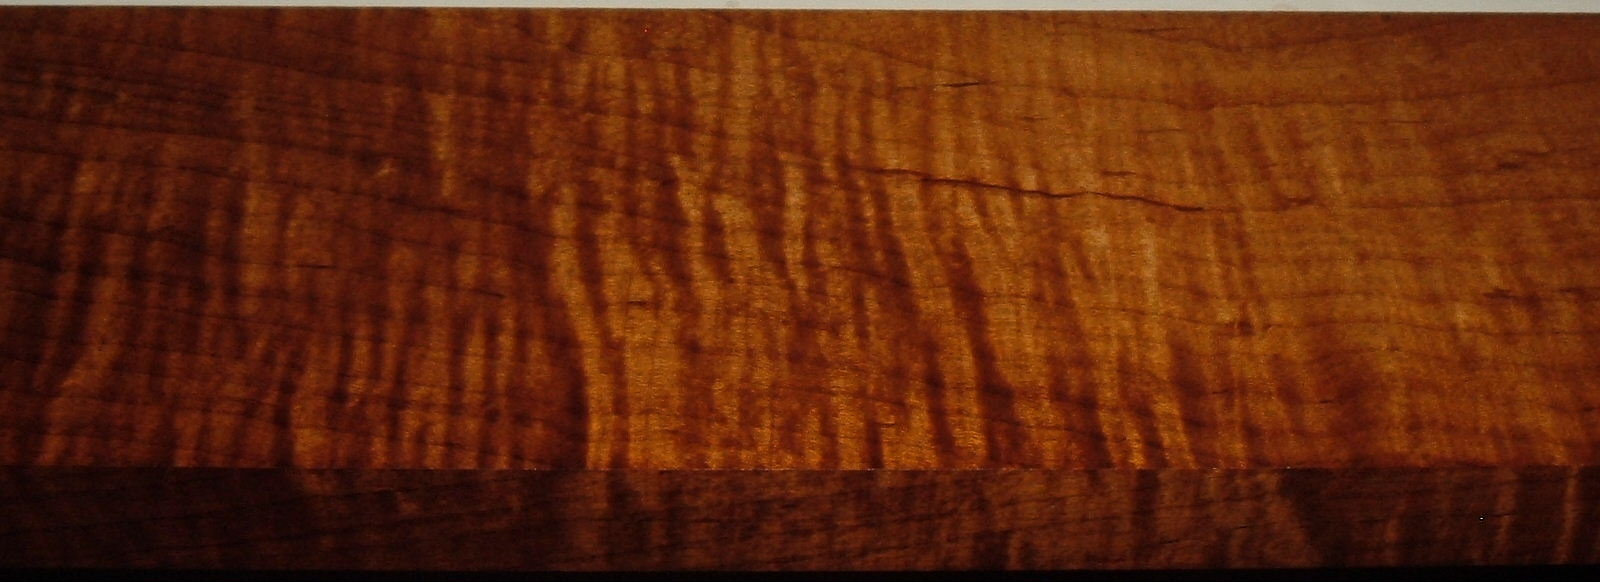 RM2004-104, 1-1/16x4x38, Roasted Torrefied Curly, Tiger Maple